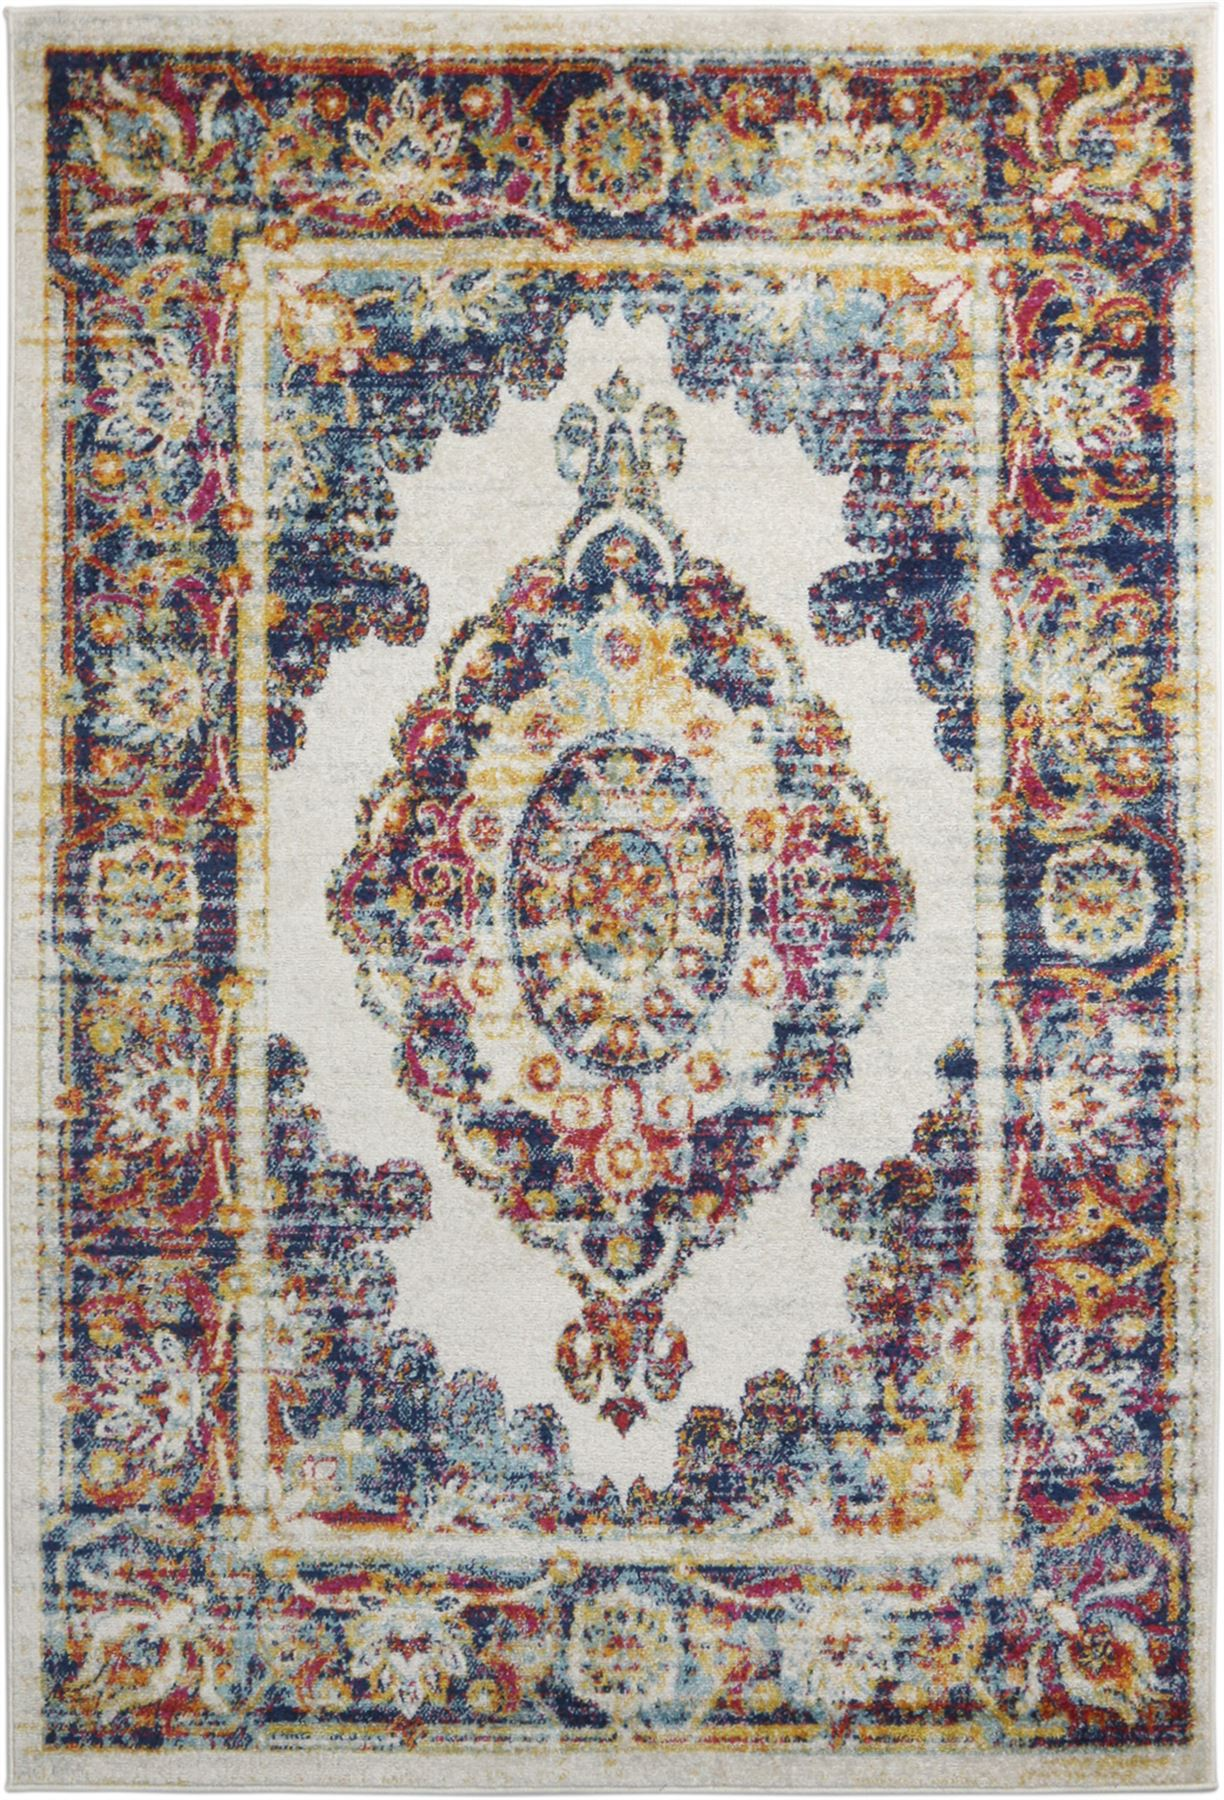 Large-Quality-Traditional-Area-Rug-Assorted-Persian-Floral-Designs-Carpet-Runner thumbnail 57